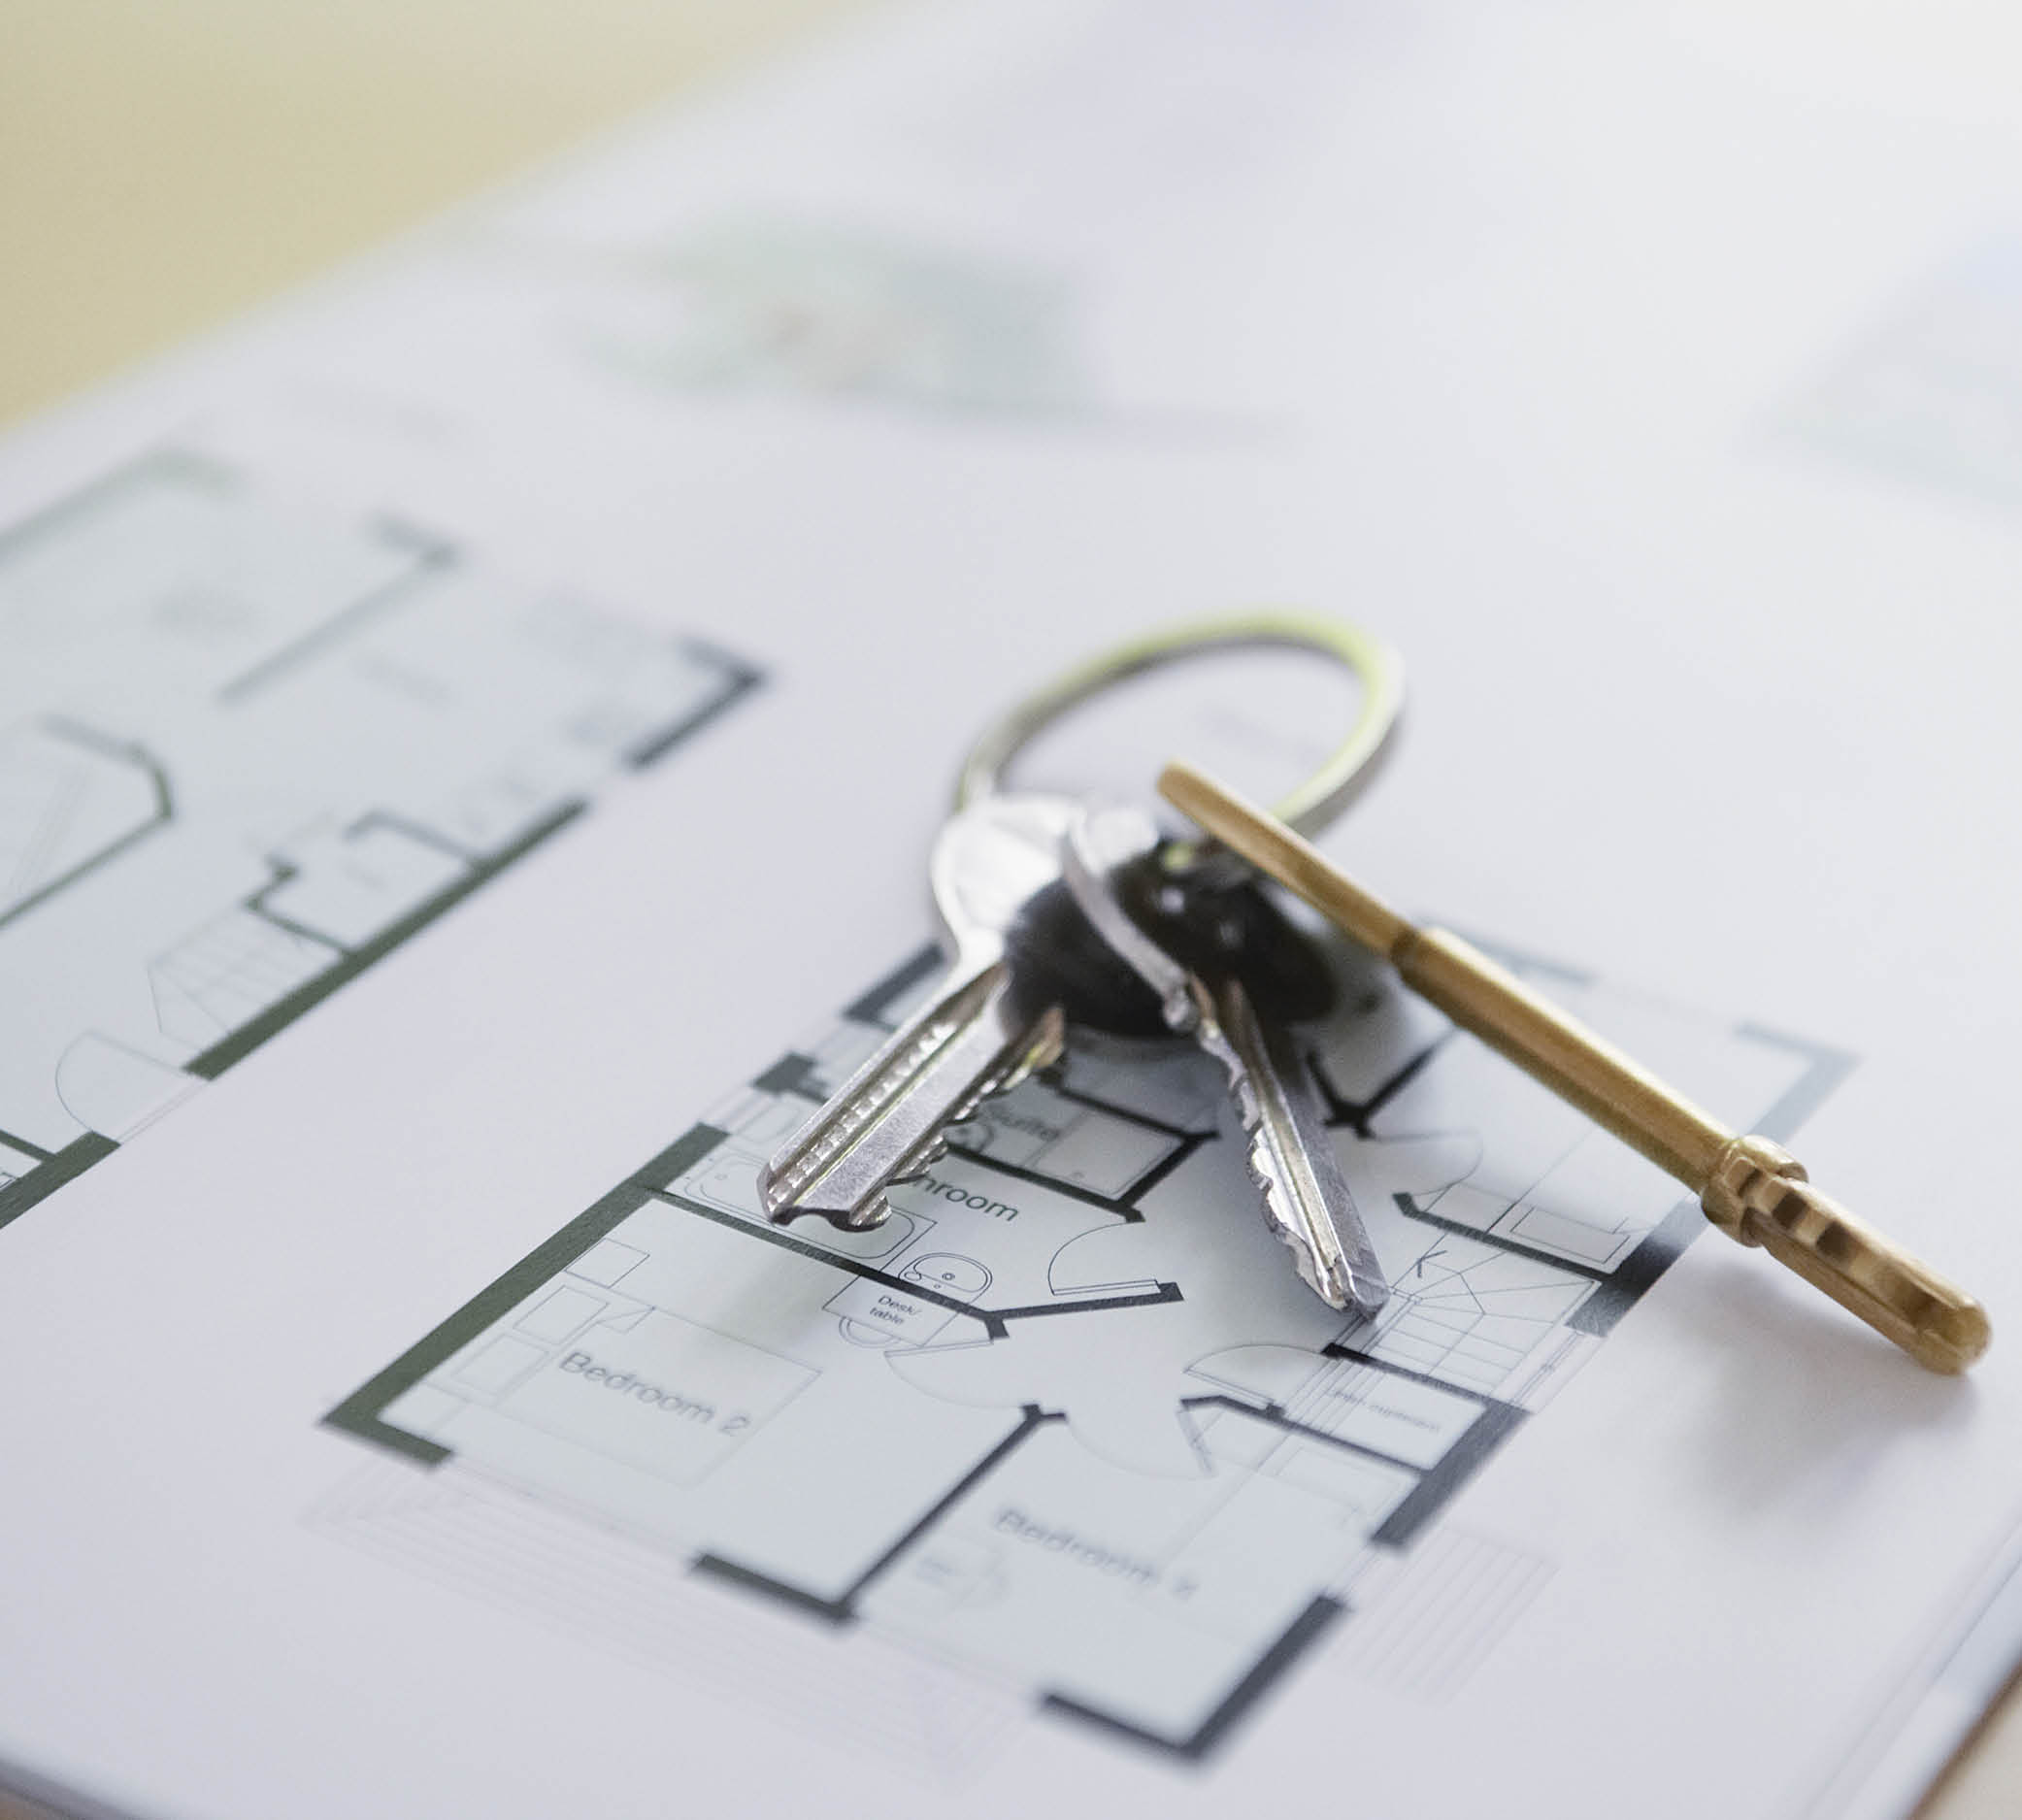 Keys on floorplans JMI